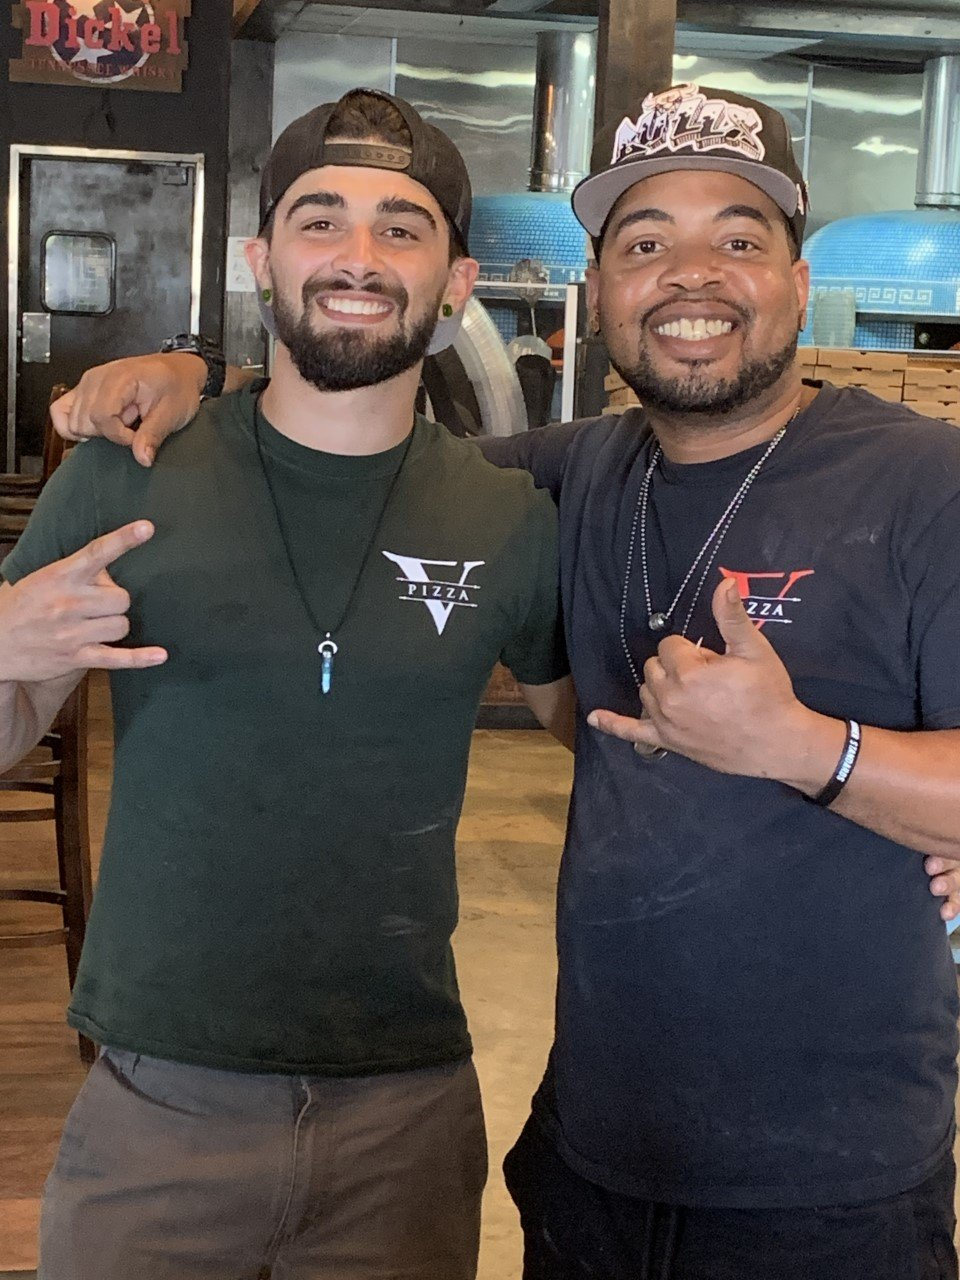 Michael Newman and Carl Davis are two of the few still on the job at V Pizza and Tap Room.